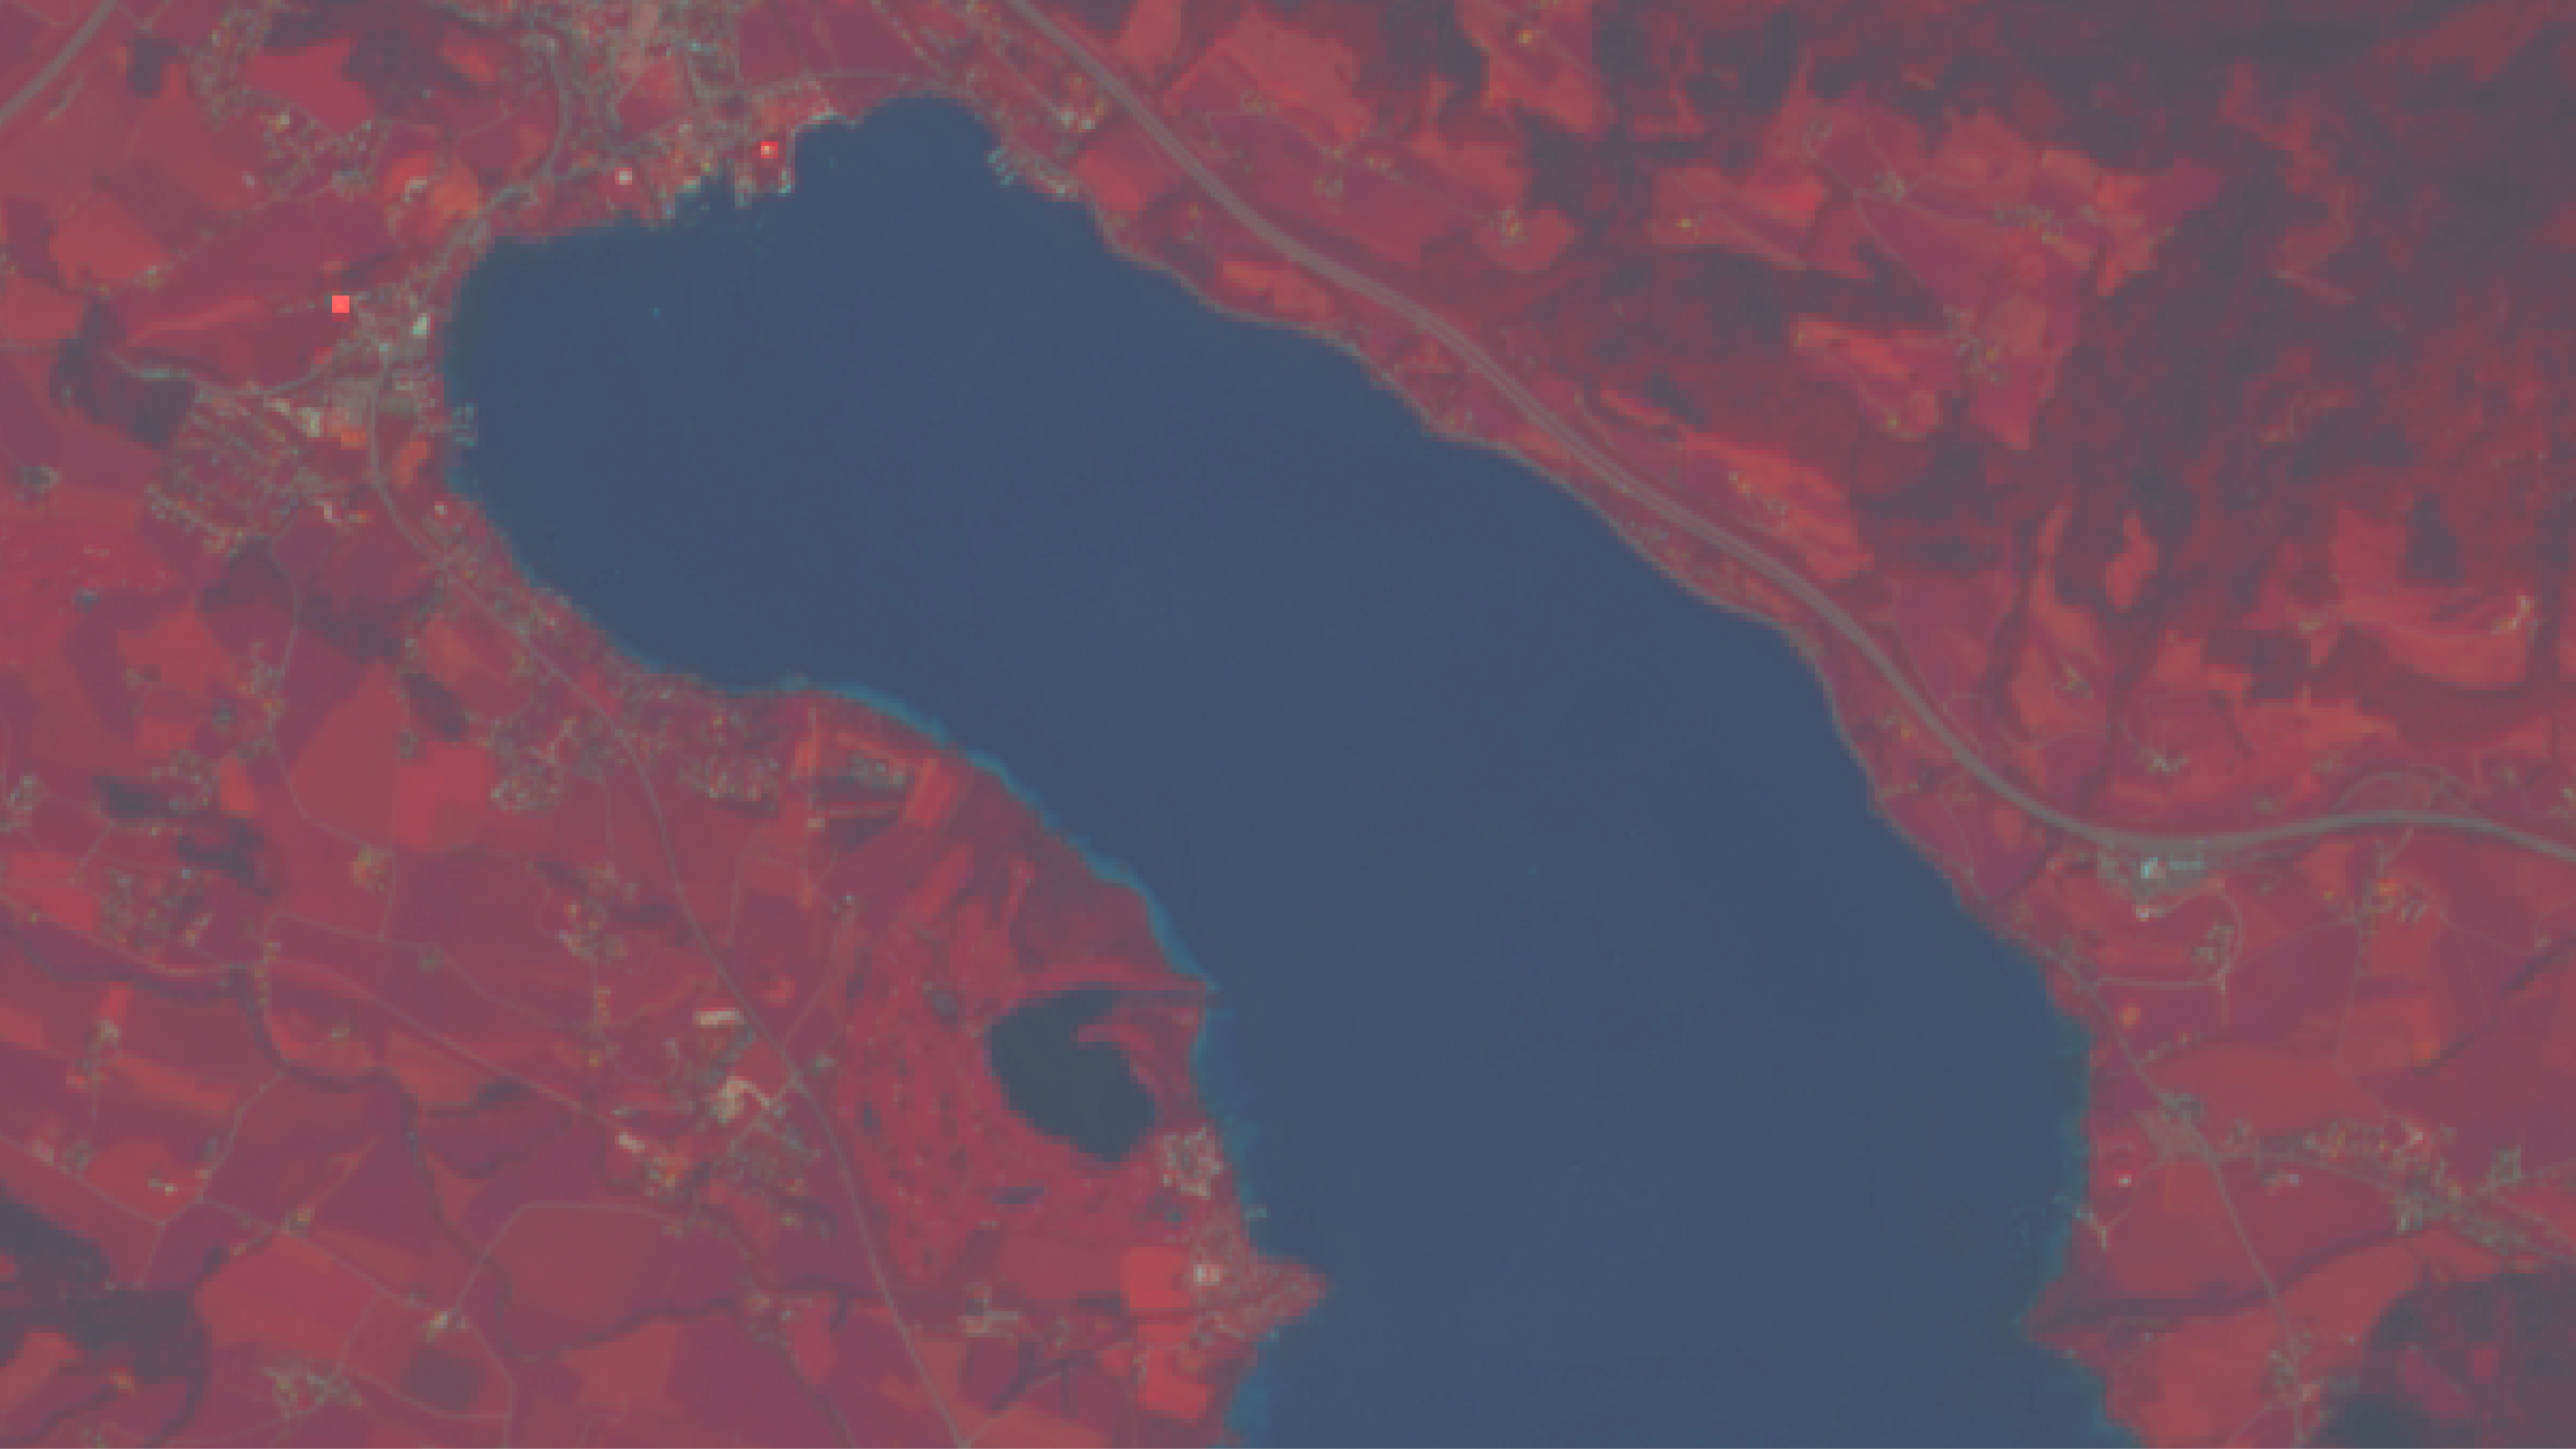 Sentinel-2 false-colour image of Lake Mondsee in Austria. The lake appears deep blue whereas the surrounding vegetated areas are coloured red due to the strong reflection of sunlight in the infra-red portion of the electro-magnetic spectrum